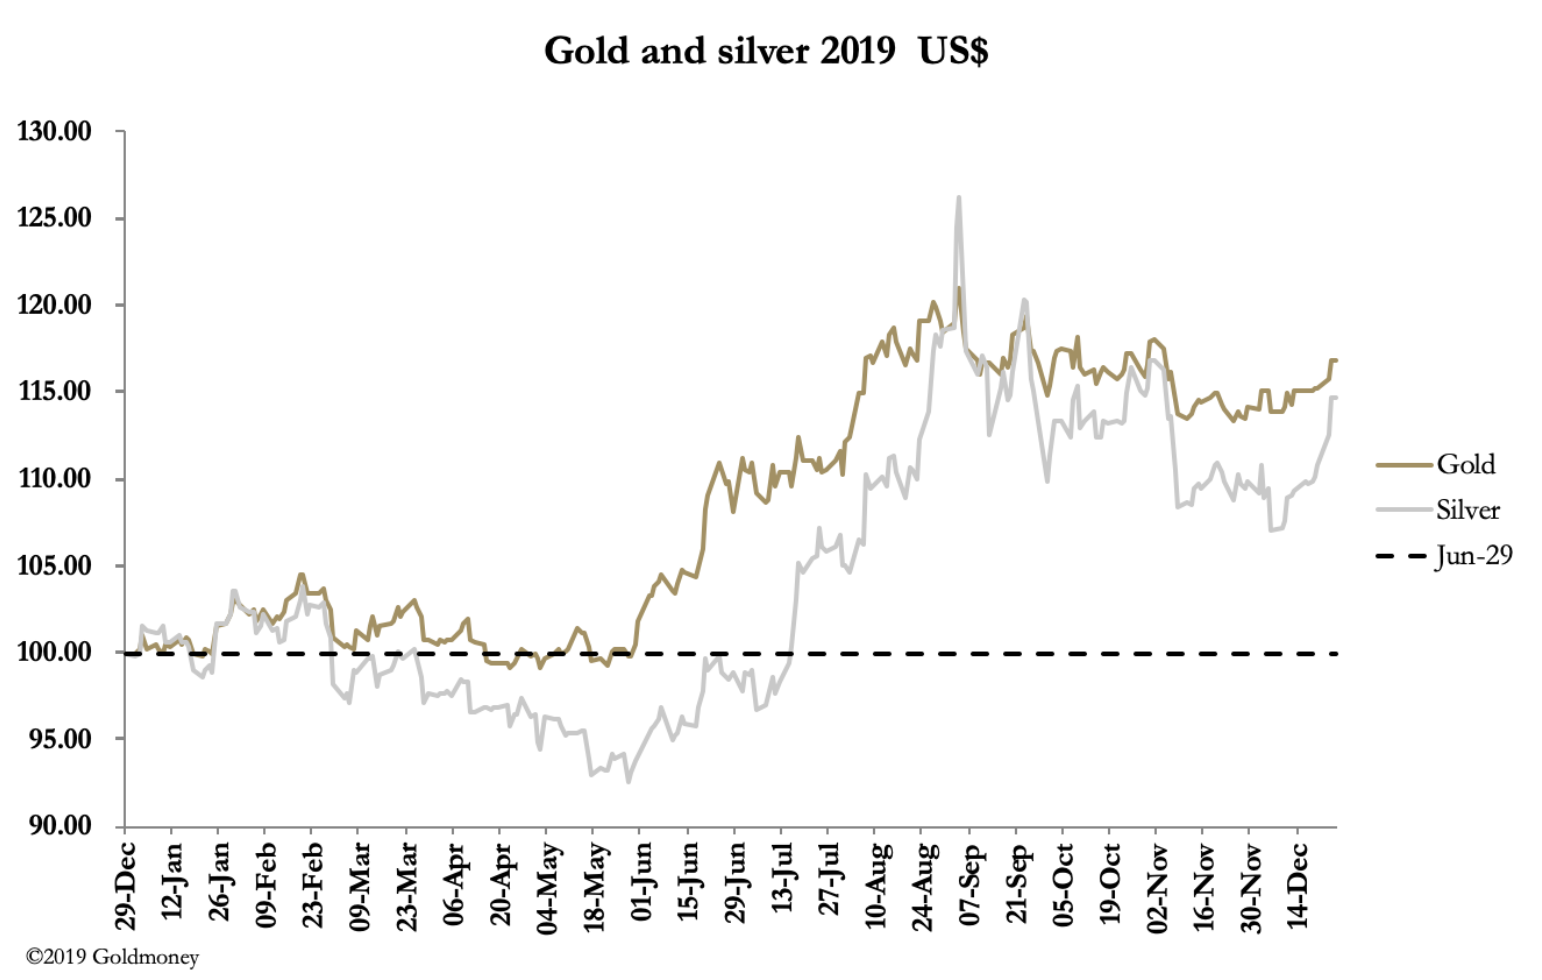 24hGold - Gold's outlook for 2...